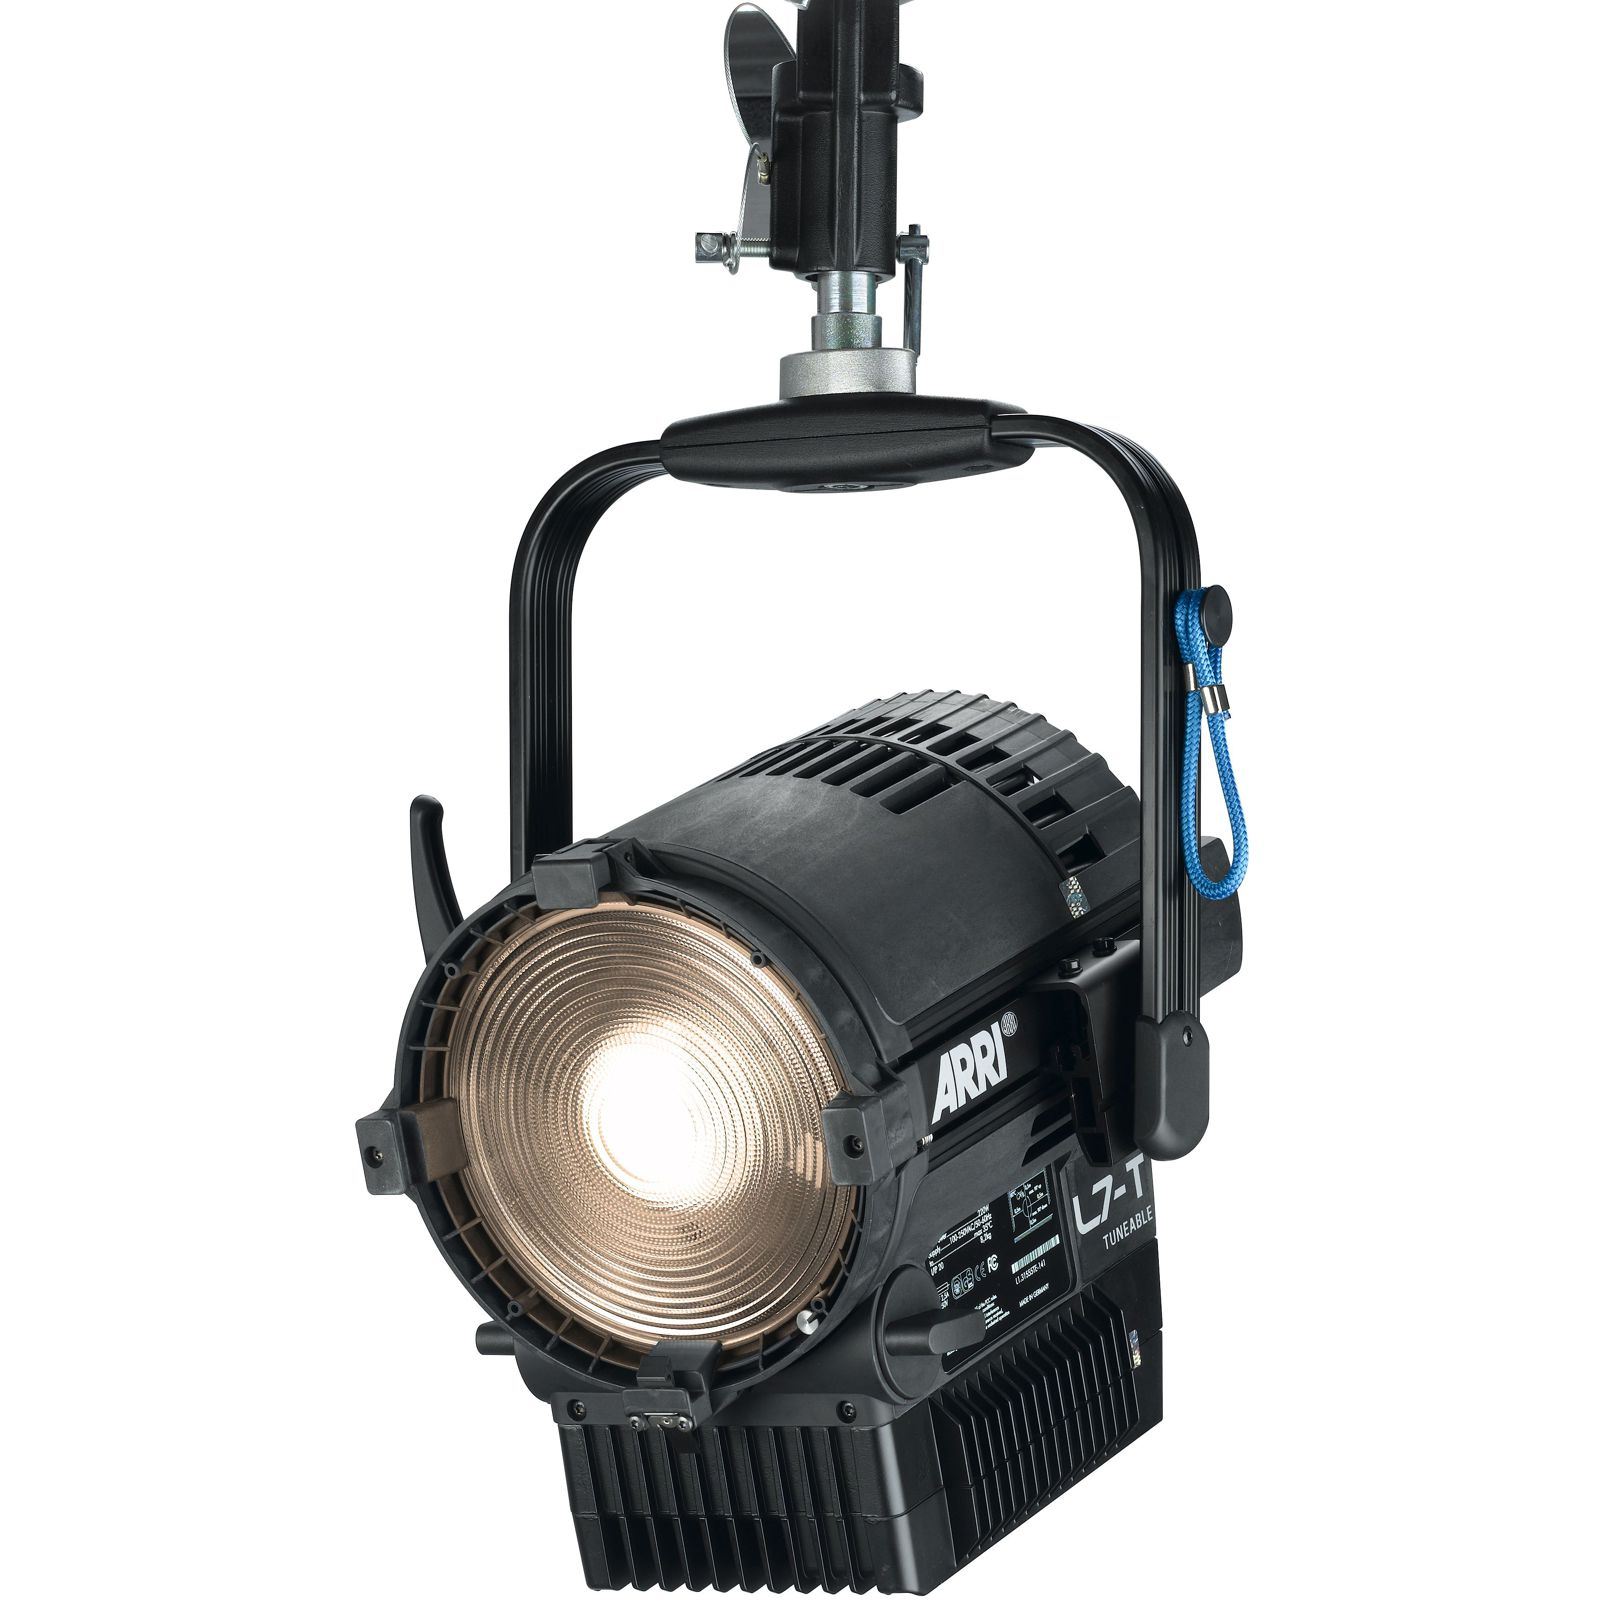 Прибор ARRI L7-TT L1.31530TD (Stand-Mount, Blue/Silver, 3 m Cable, Schuko Connector)